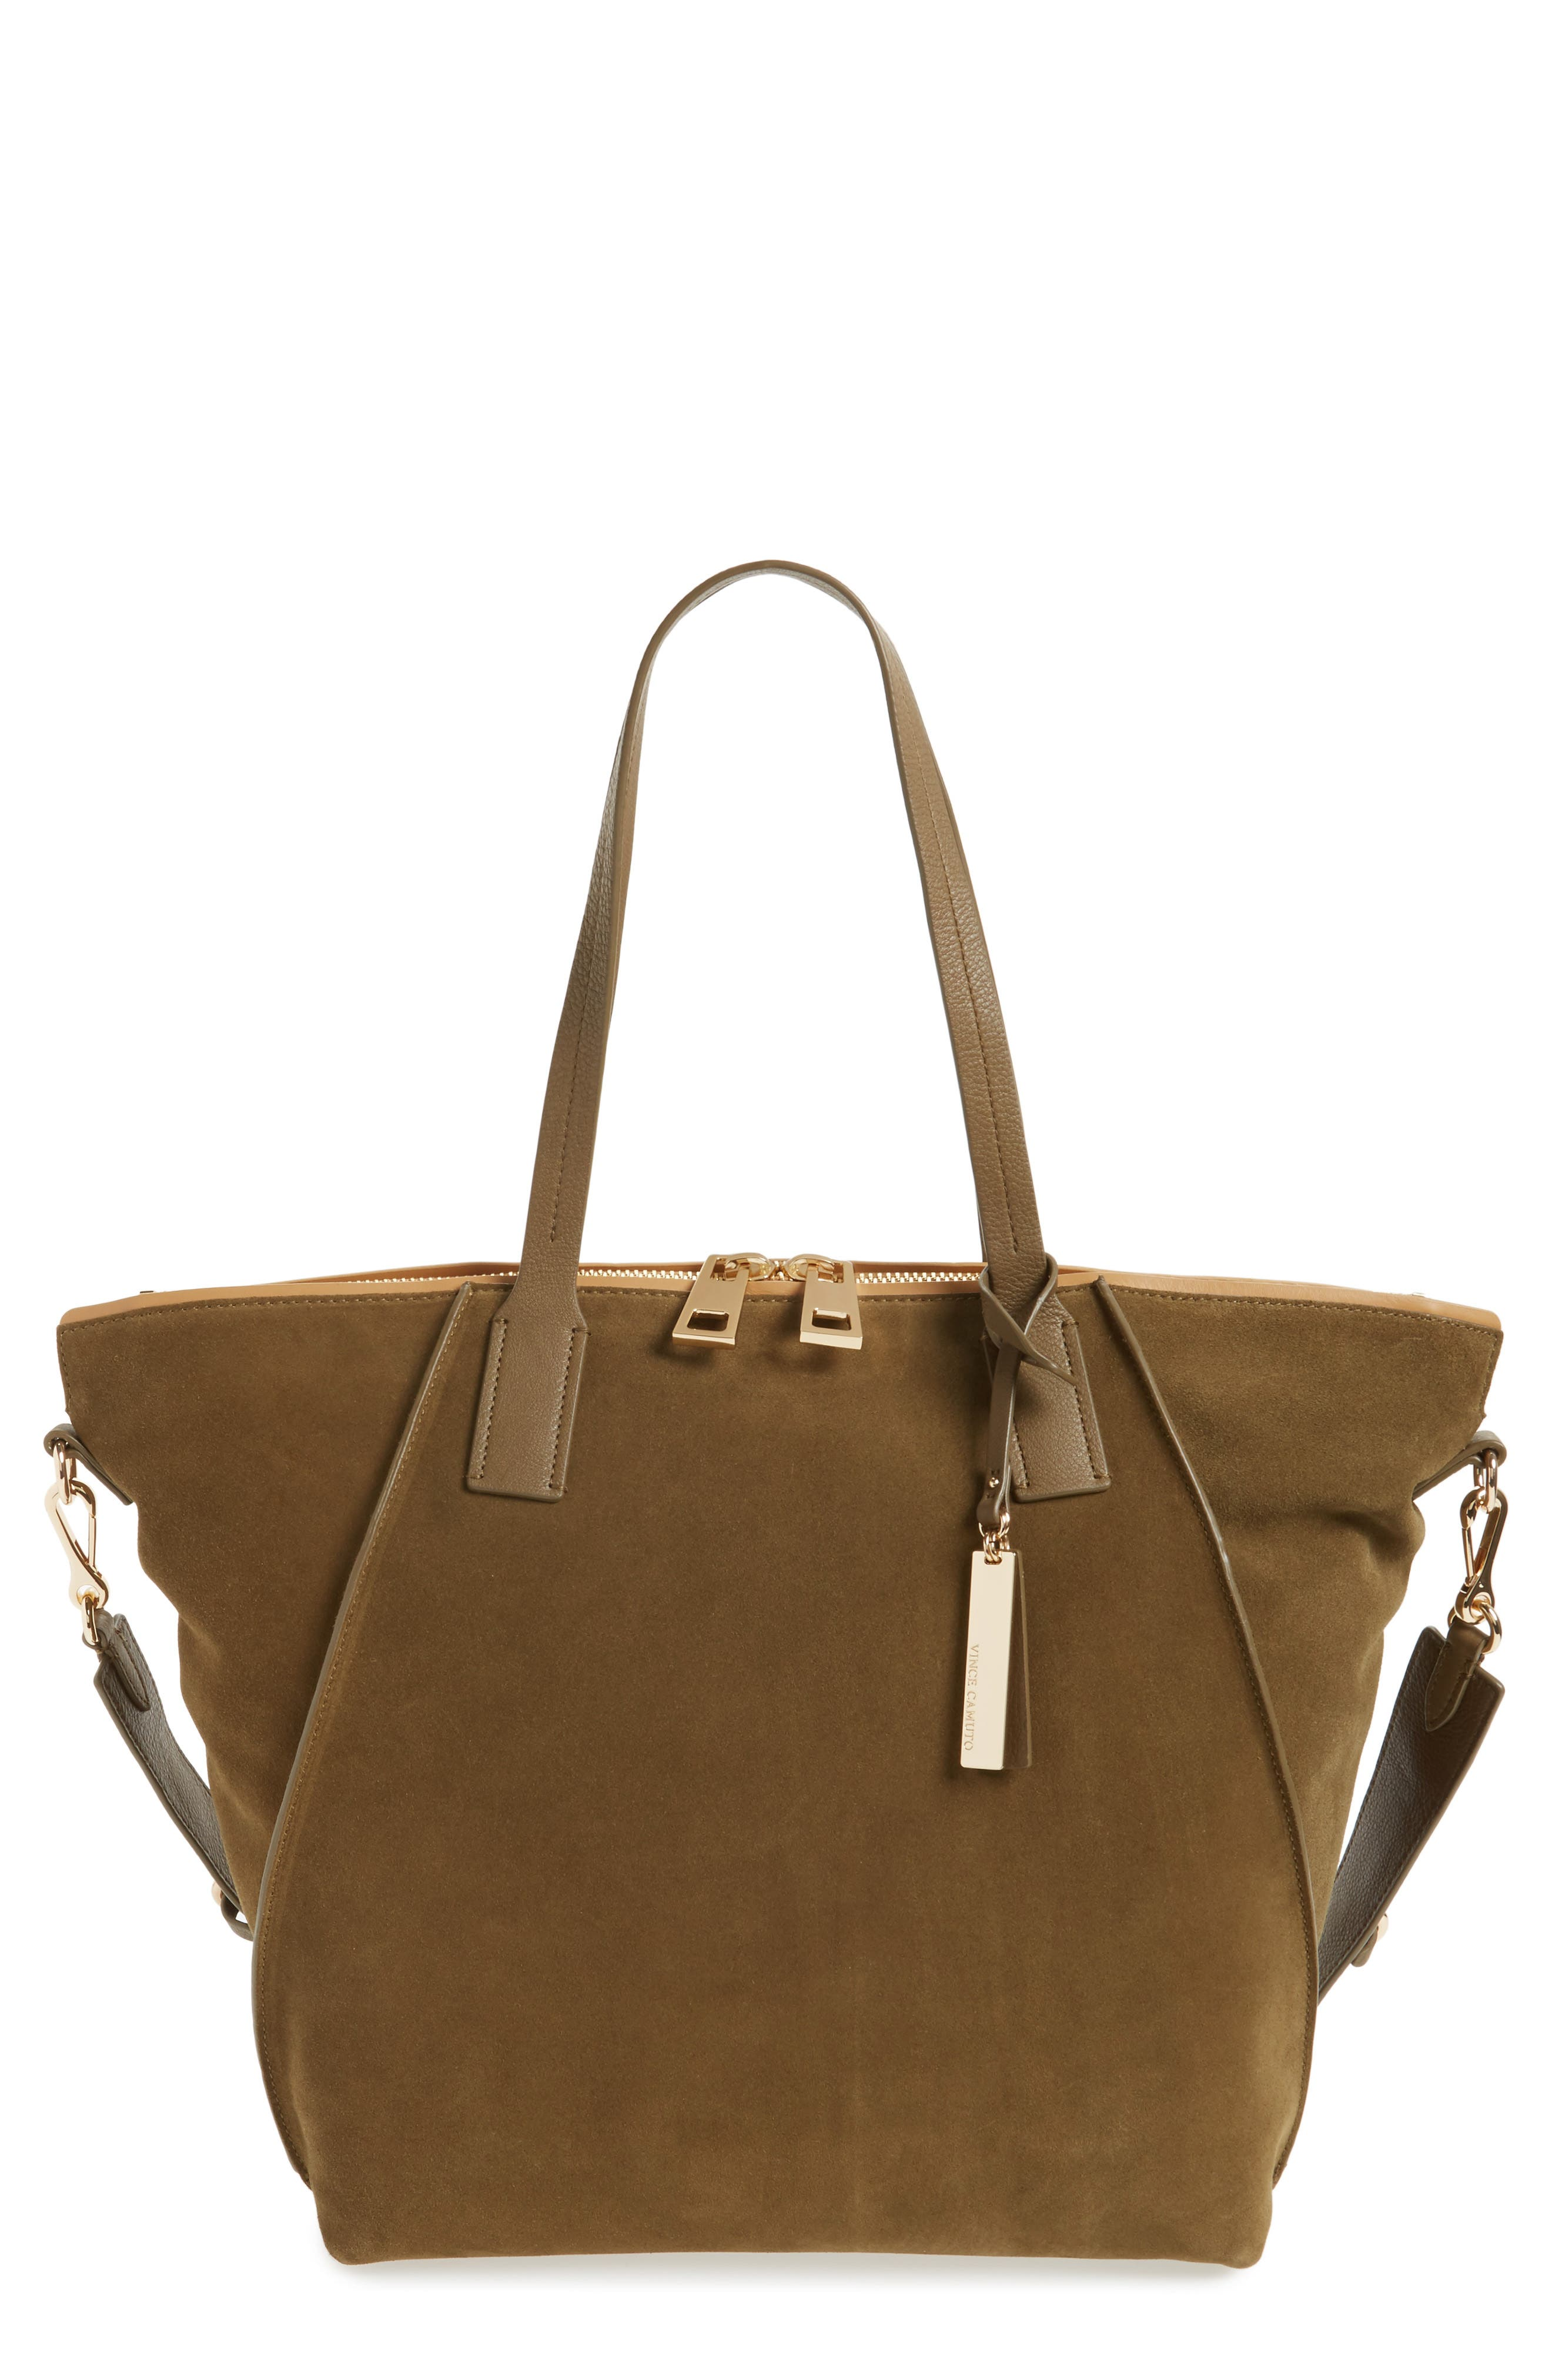 Vince Camuto Alicia Suede & Leather Tote